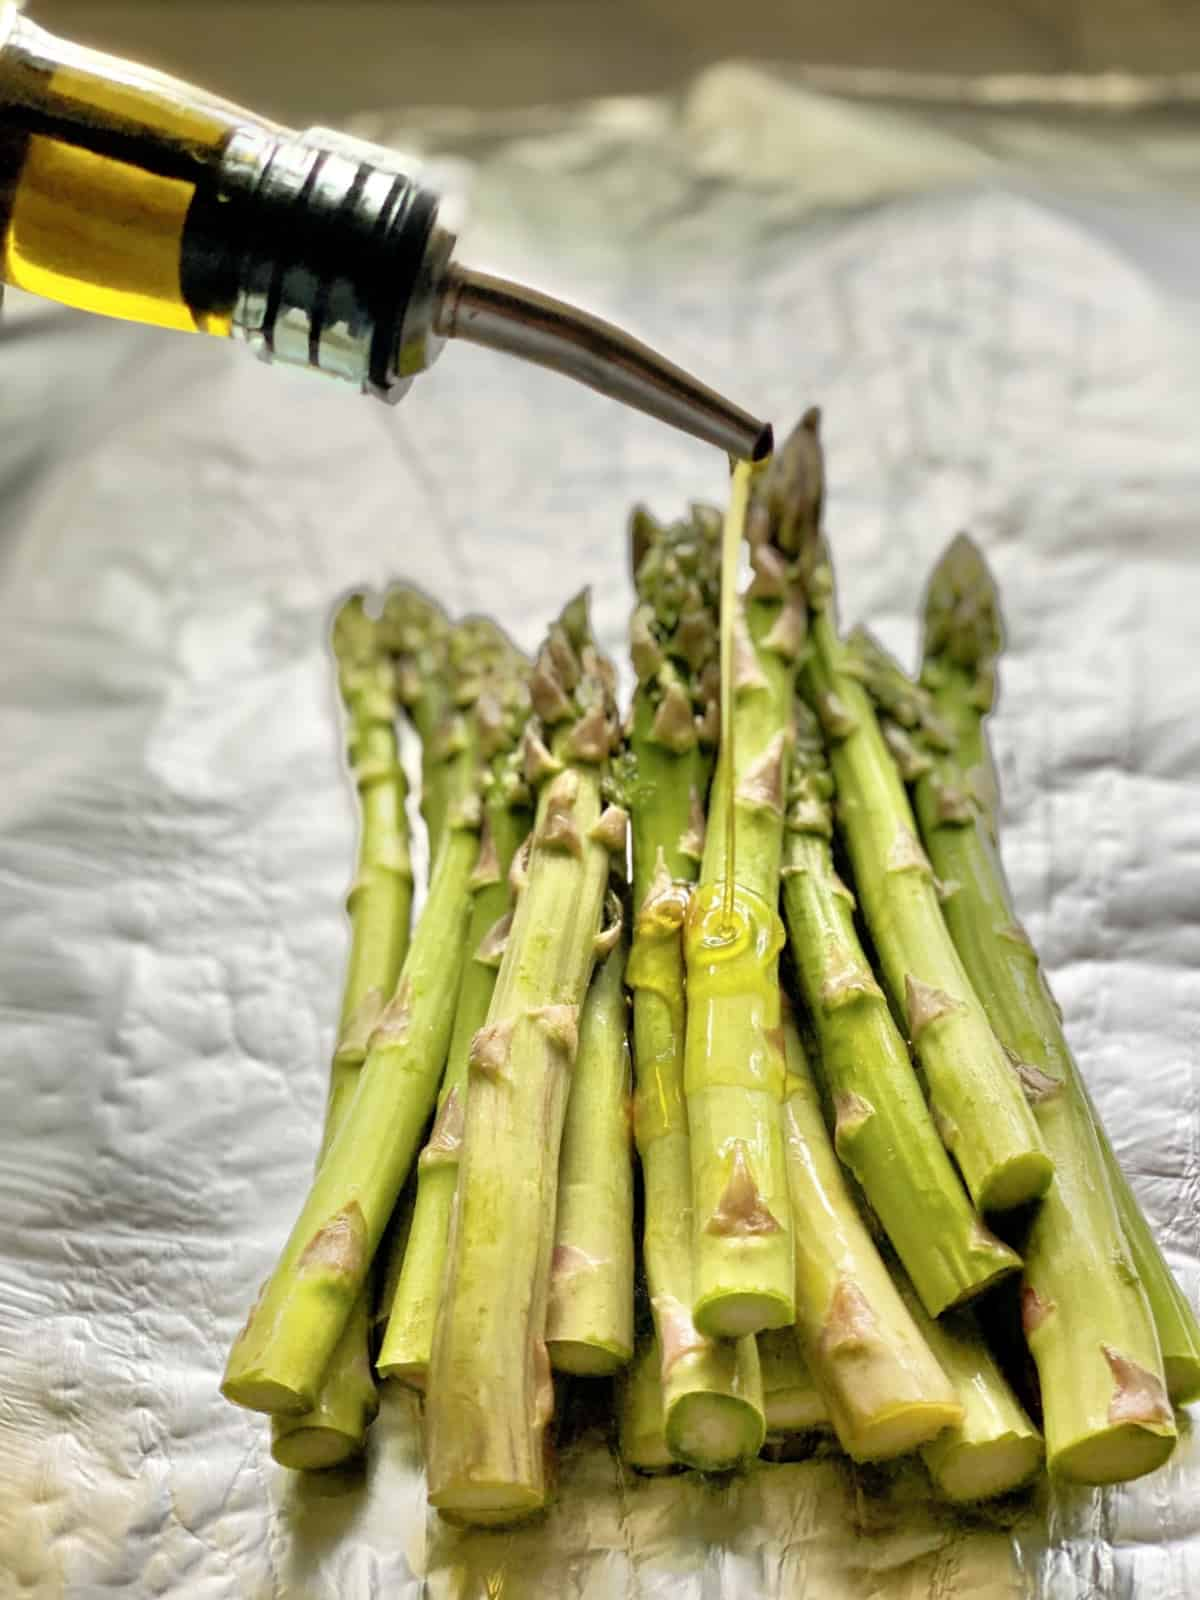 Bottle pouring oil on top of cut asparagus spears resting on foil.